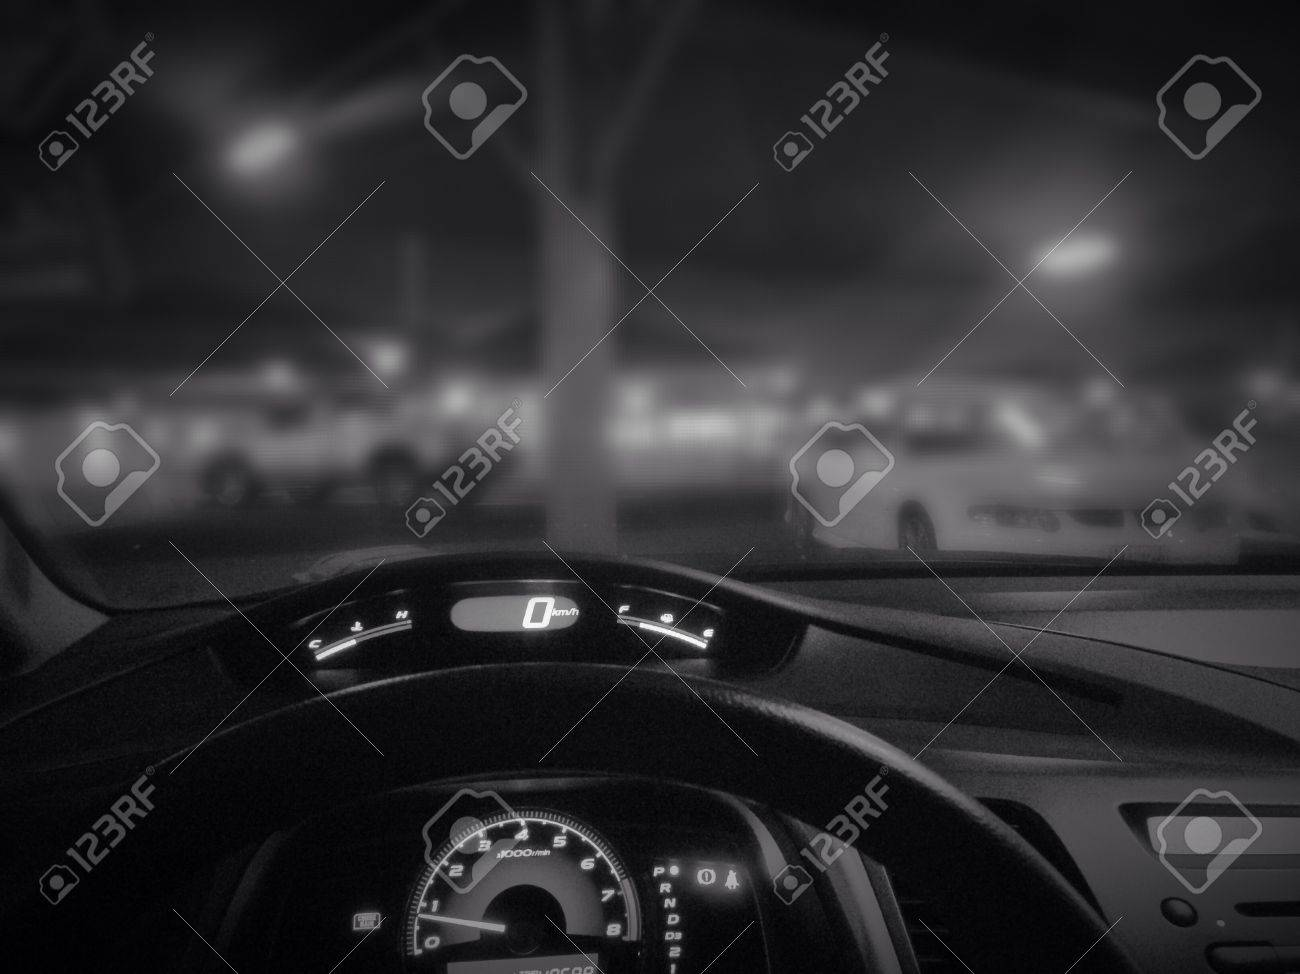 Car Dashboard During Night Stock Photo Picture And Royalty Free Image Image 22766339